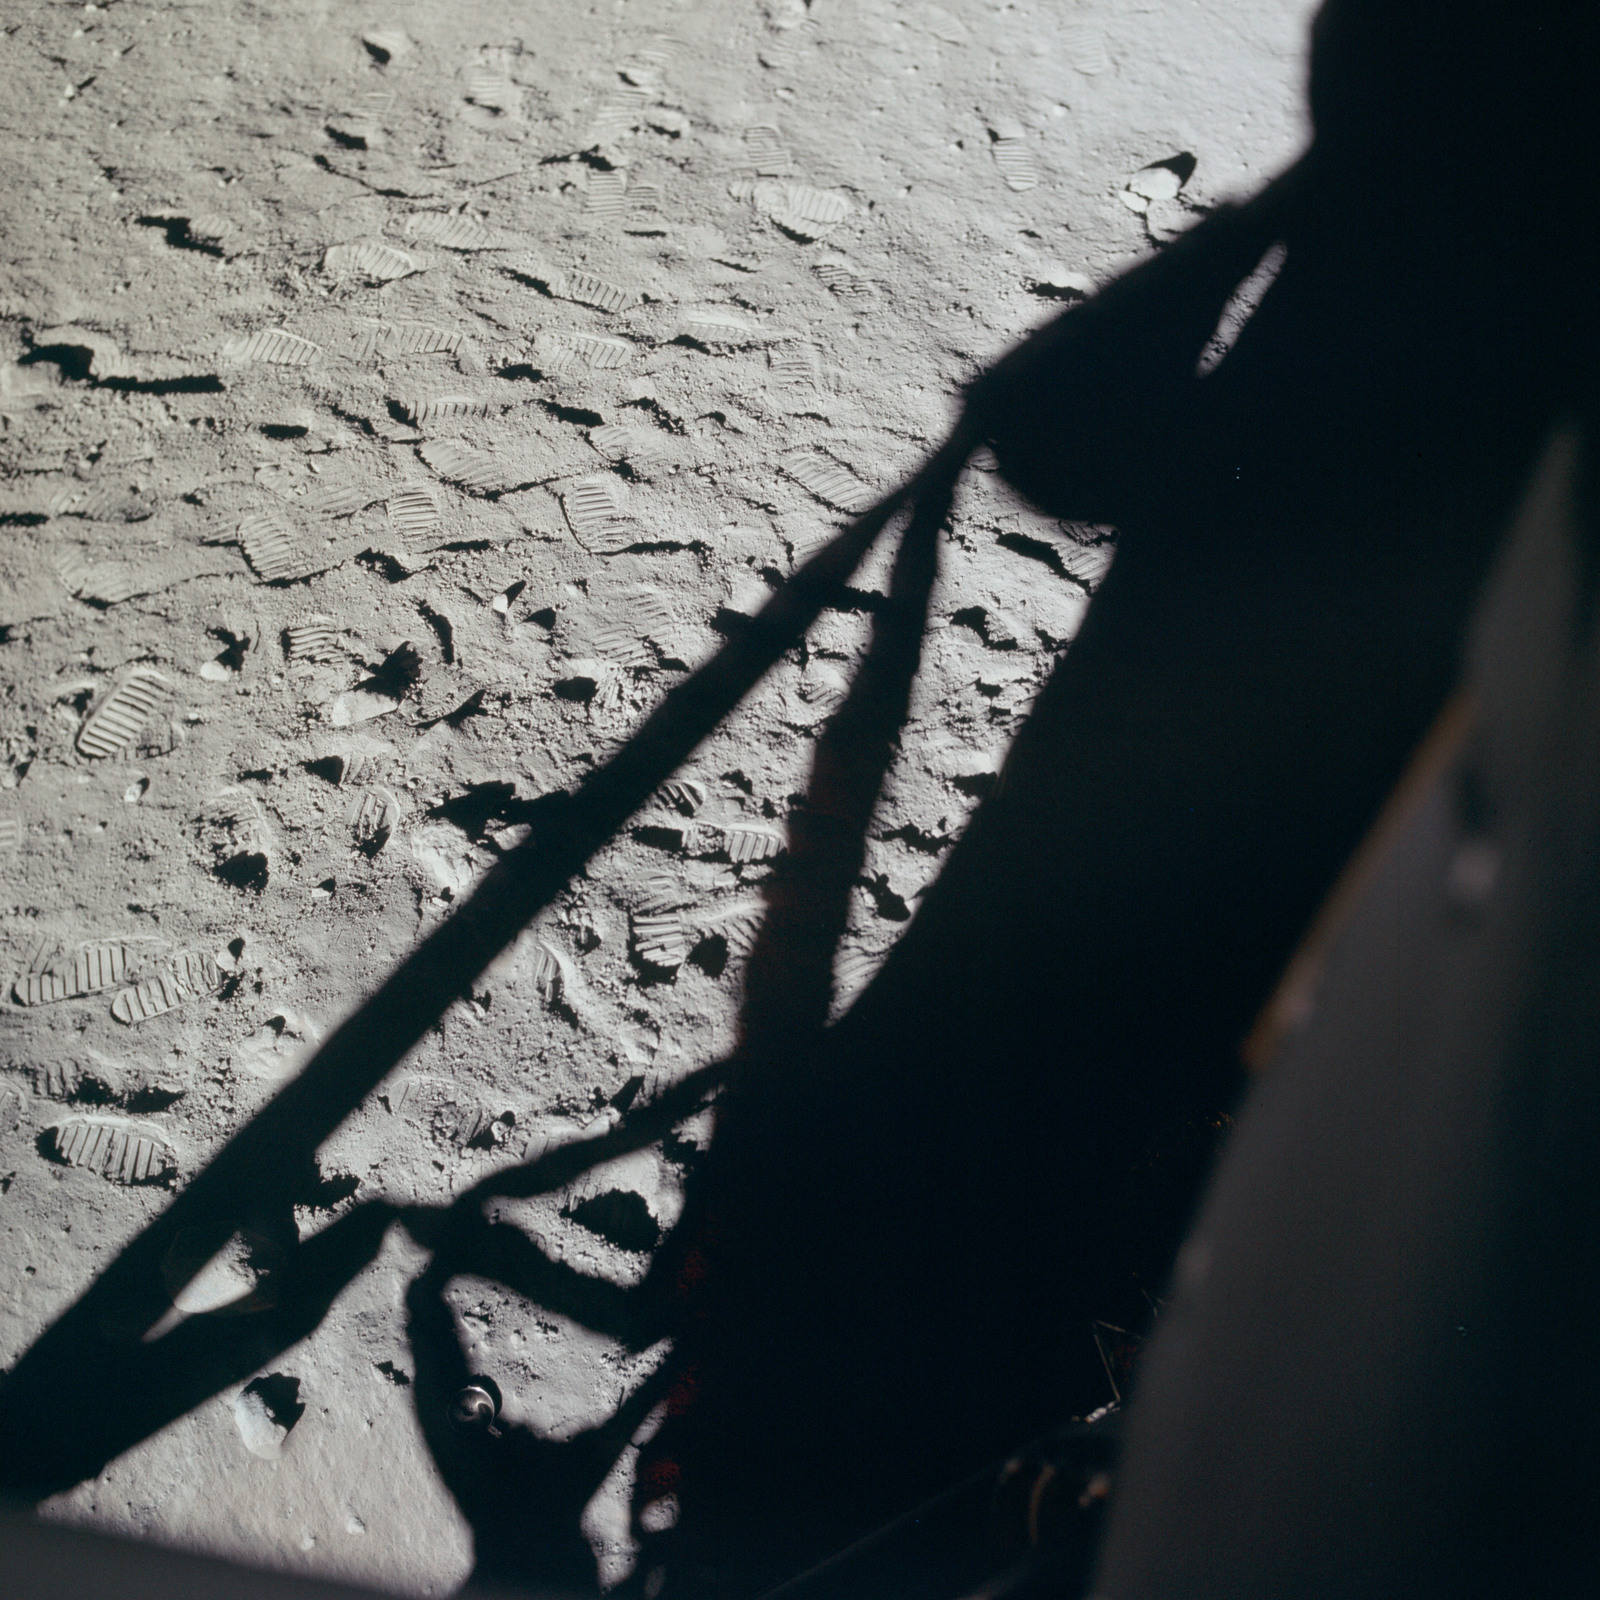 AS11-37-5505 - Apollo 11 - Apollo 11 Mission image - Lunar surface at Tranquility Base